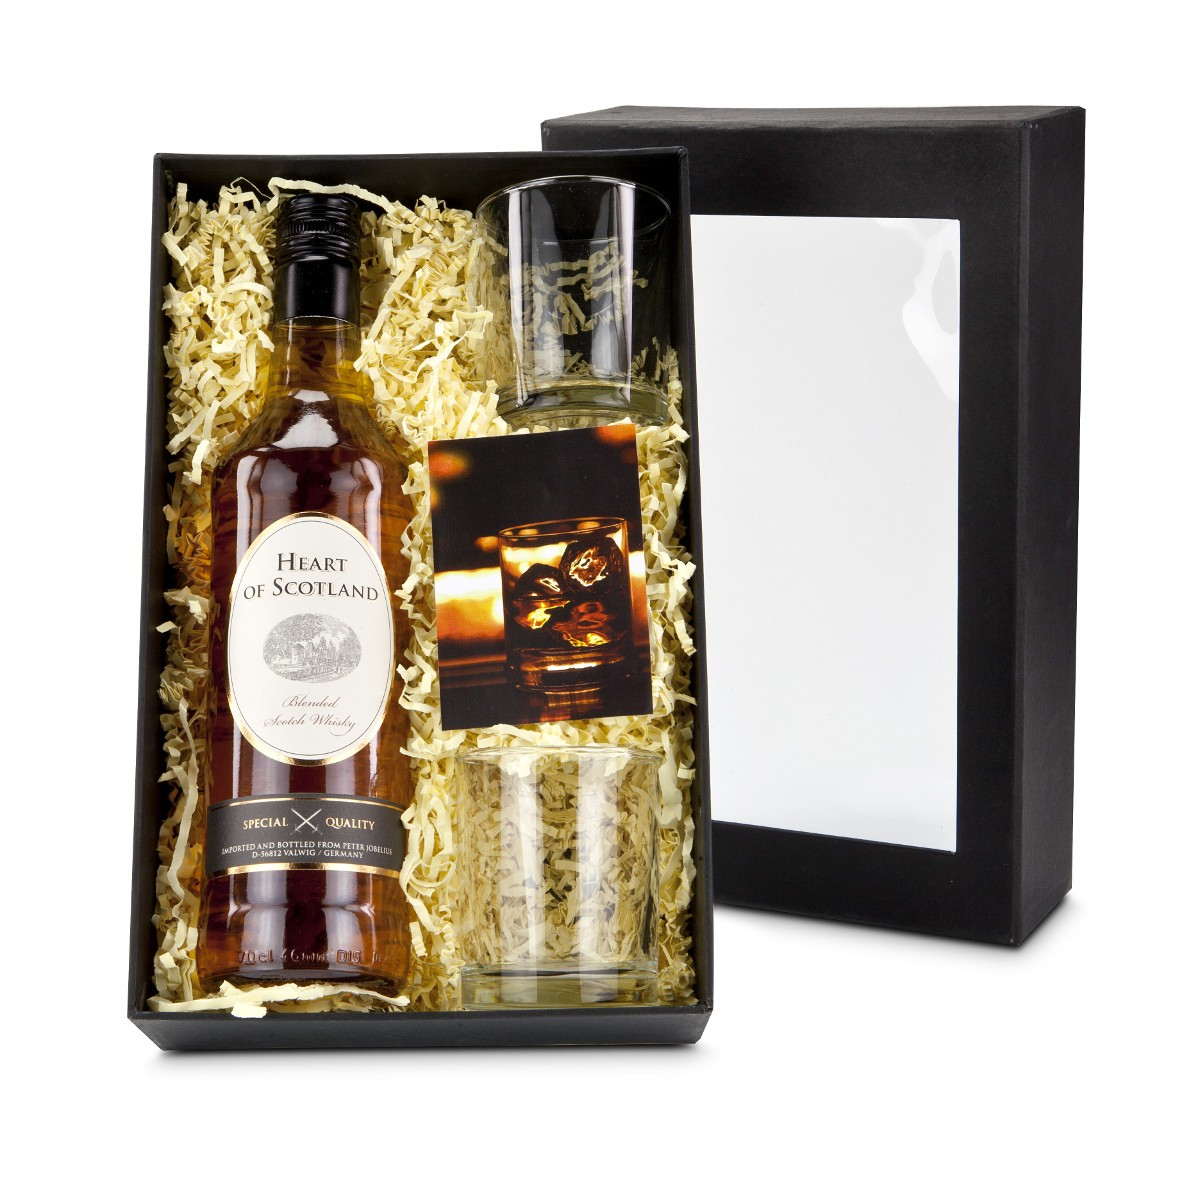 whisky set heart of scotland. Black Bedroom Furniture Sets. Home Design Ideas